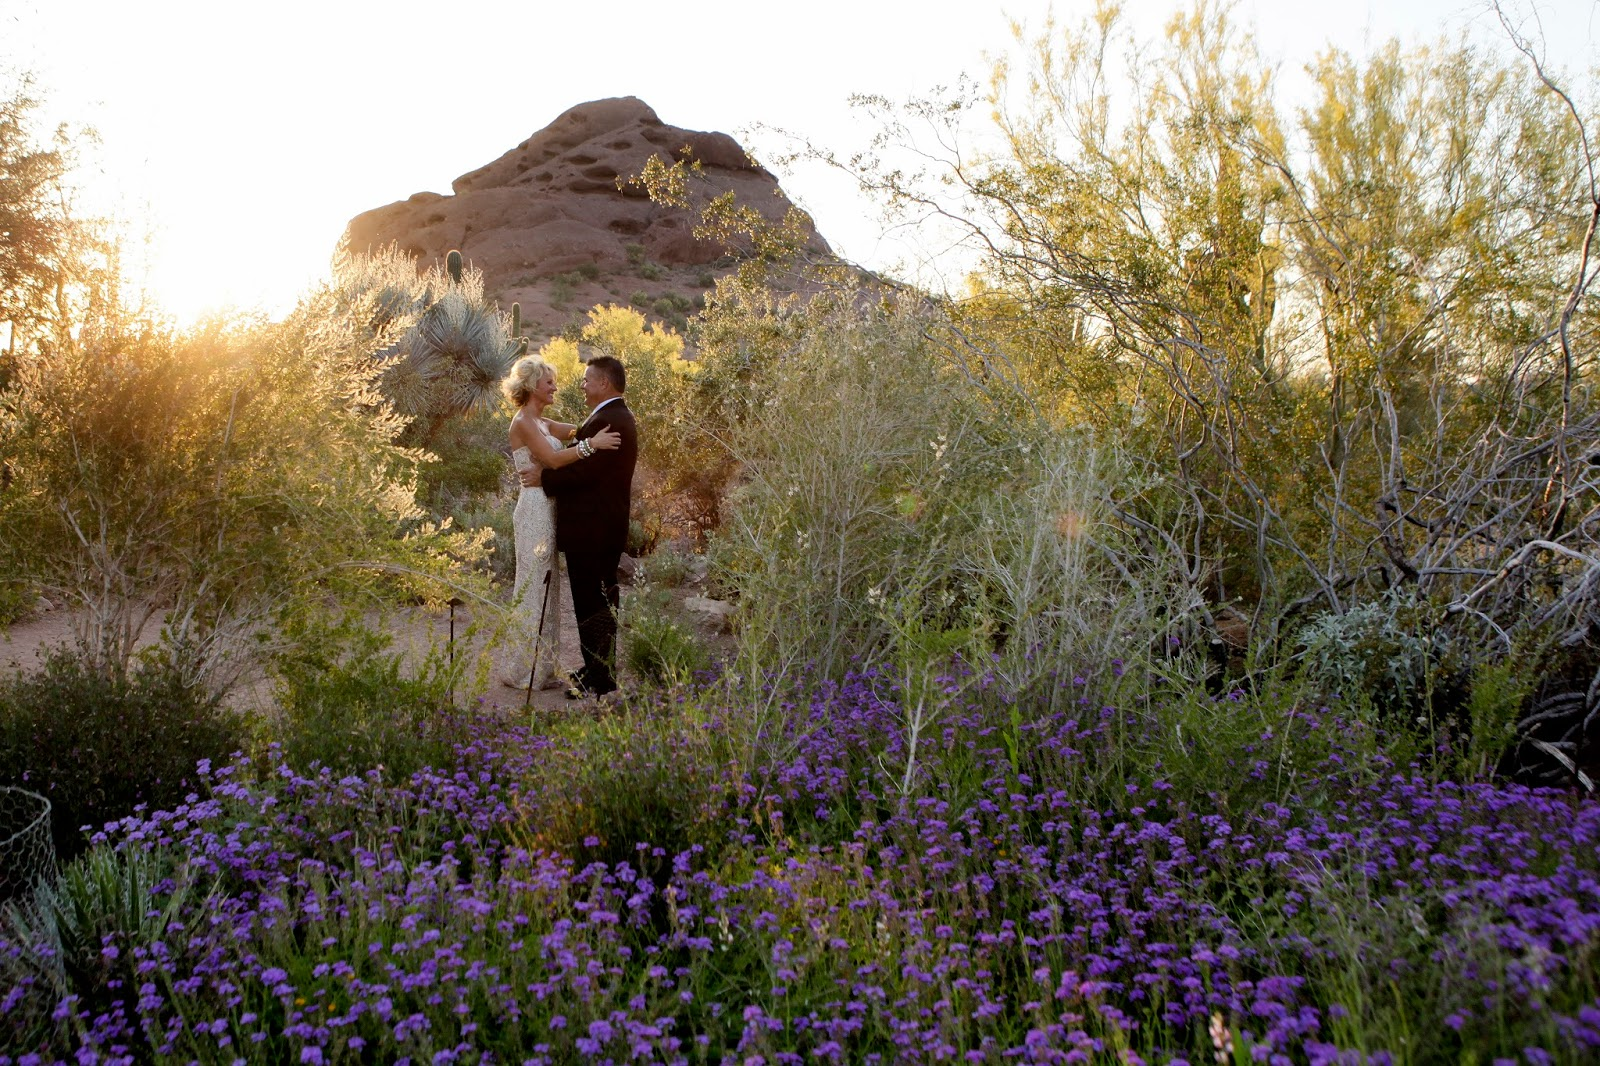 meant2be events: real wedding: meant2be events & desert botanical garden